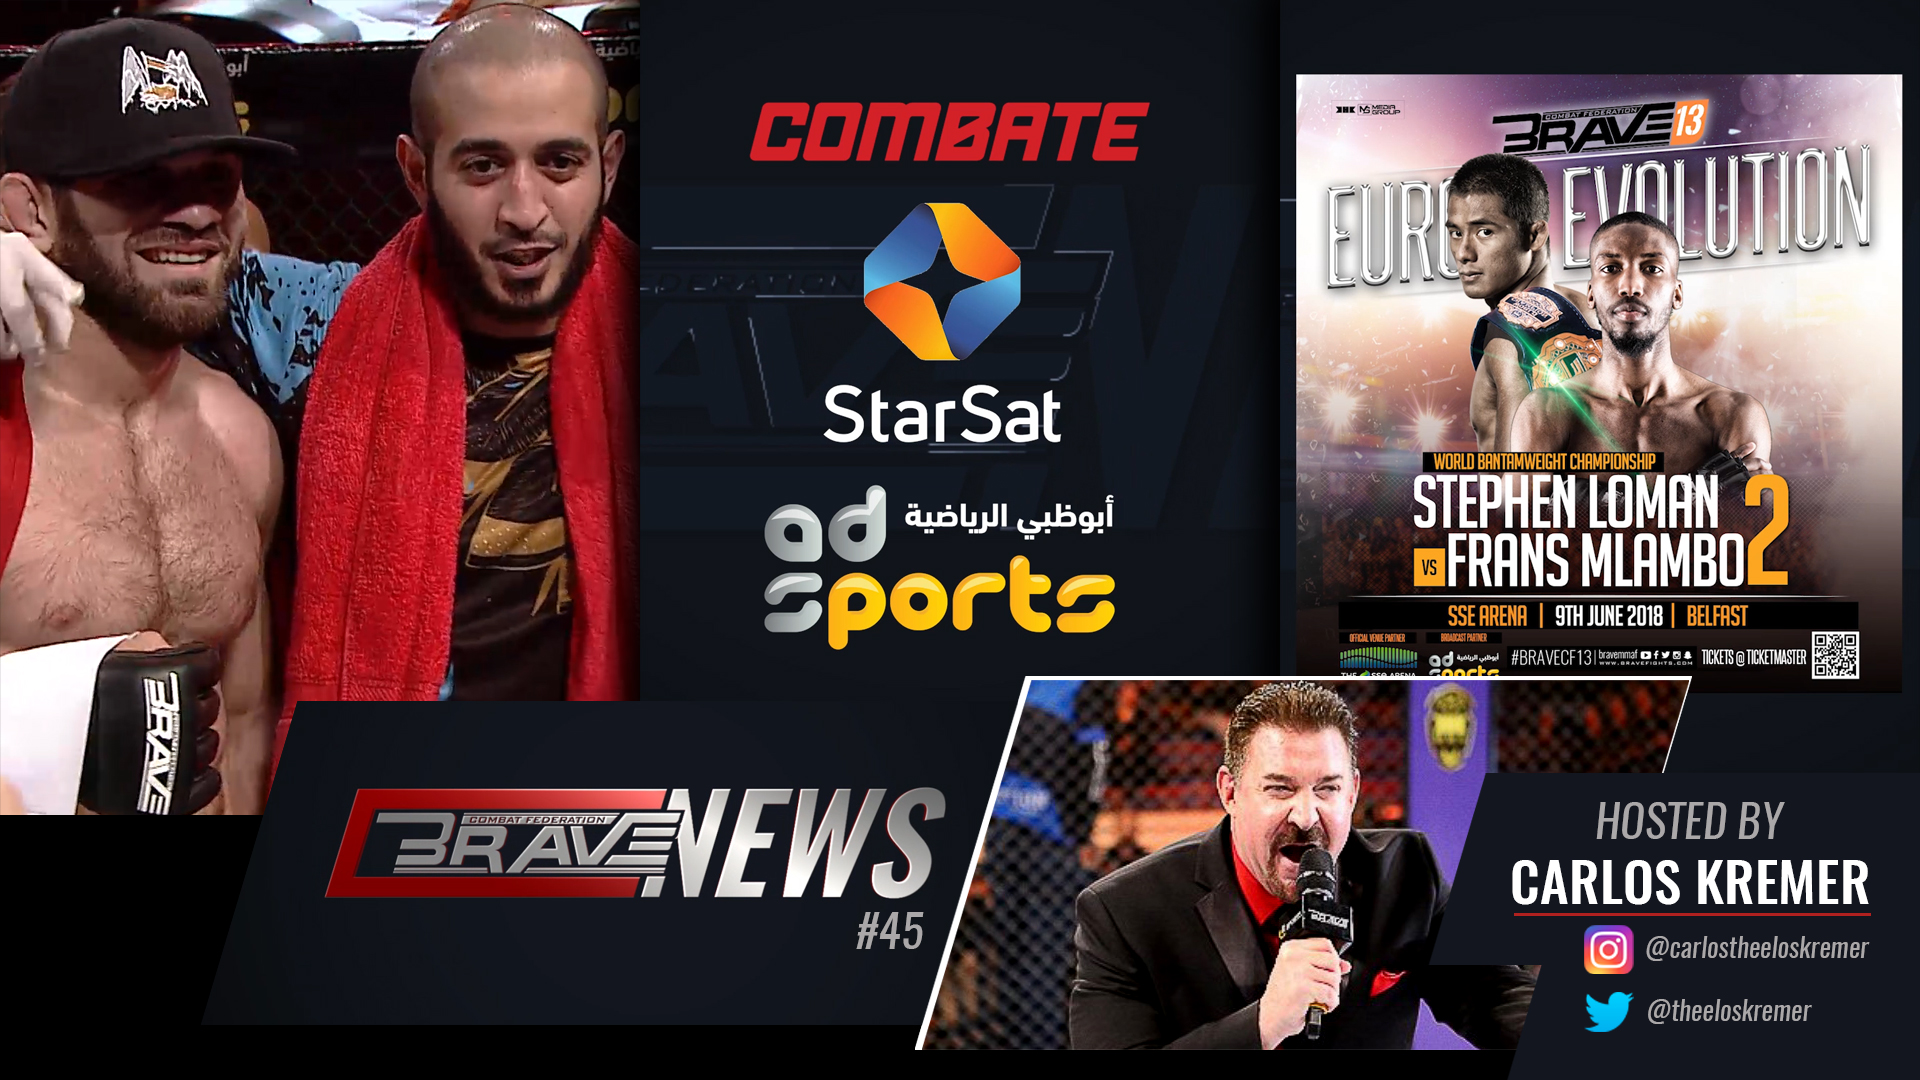 Brave News #45: Fights confirmed for Brave 13; Amoussou compares Brave to Pride -